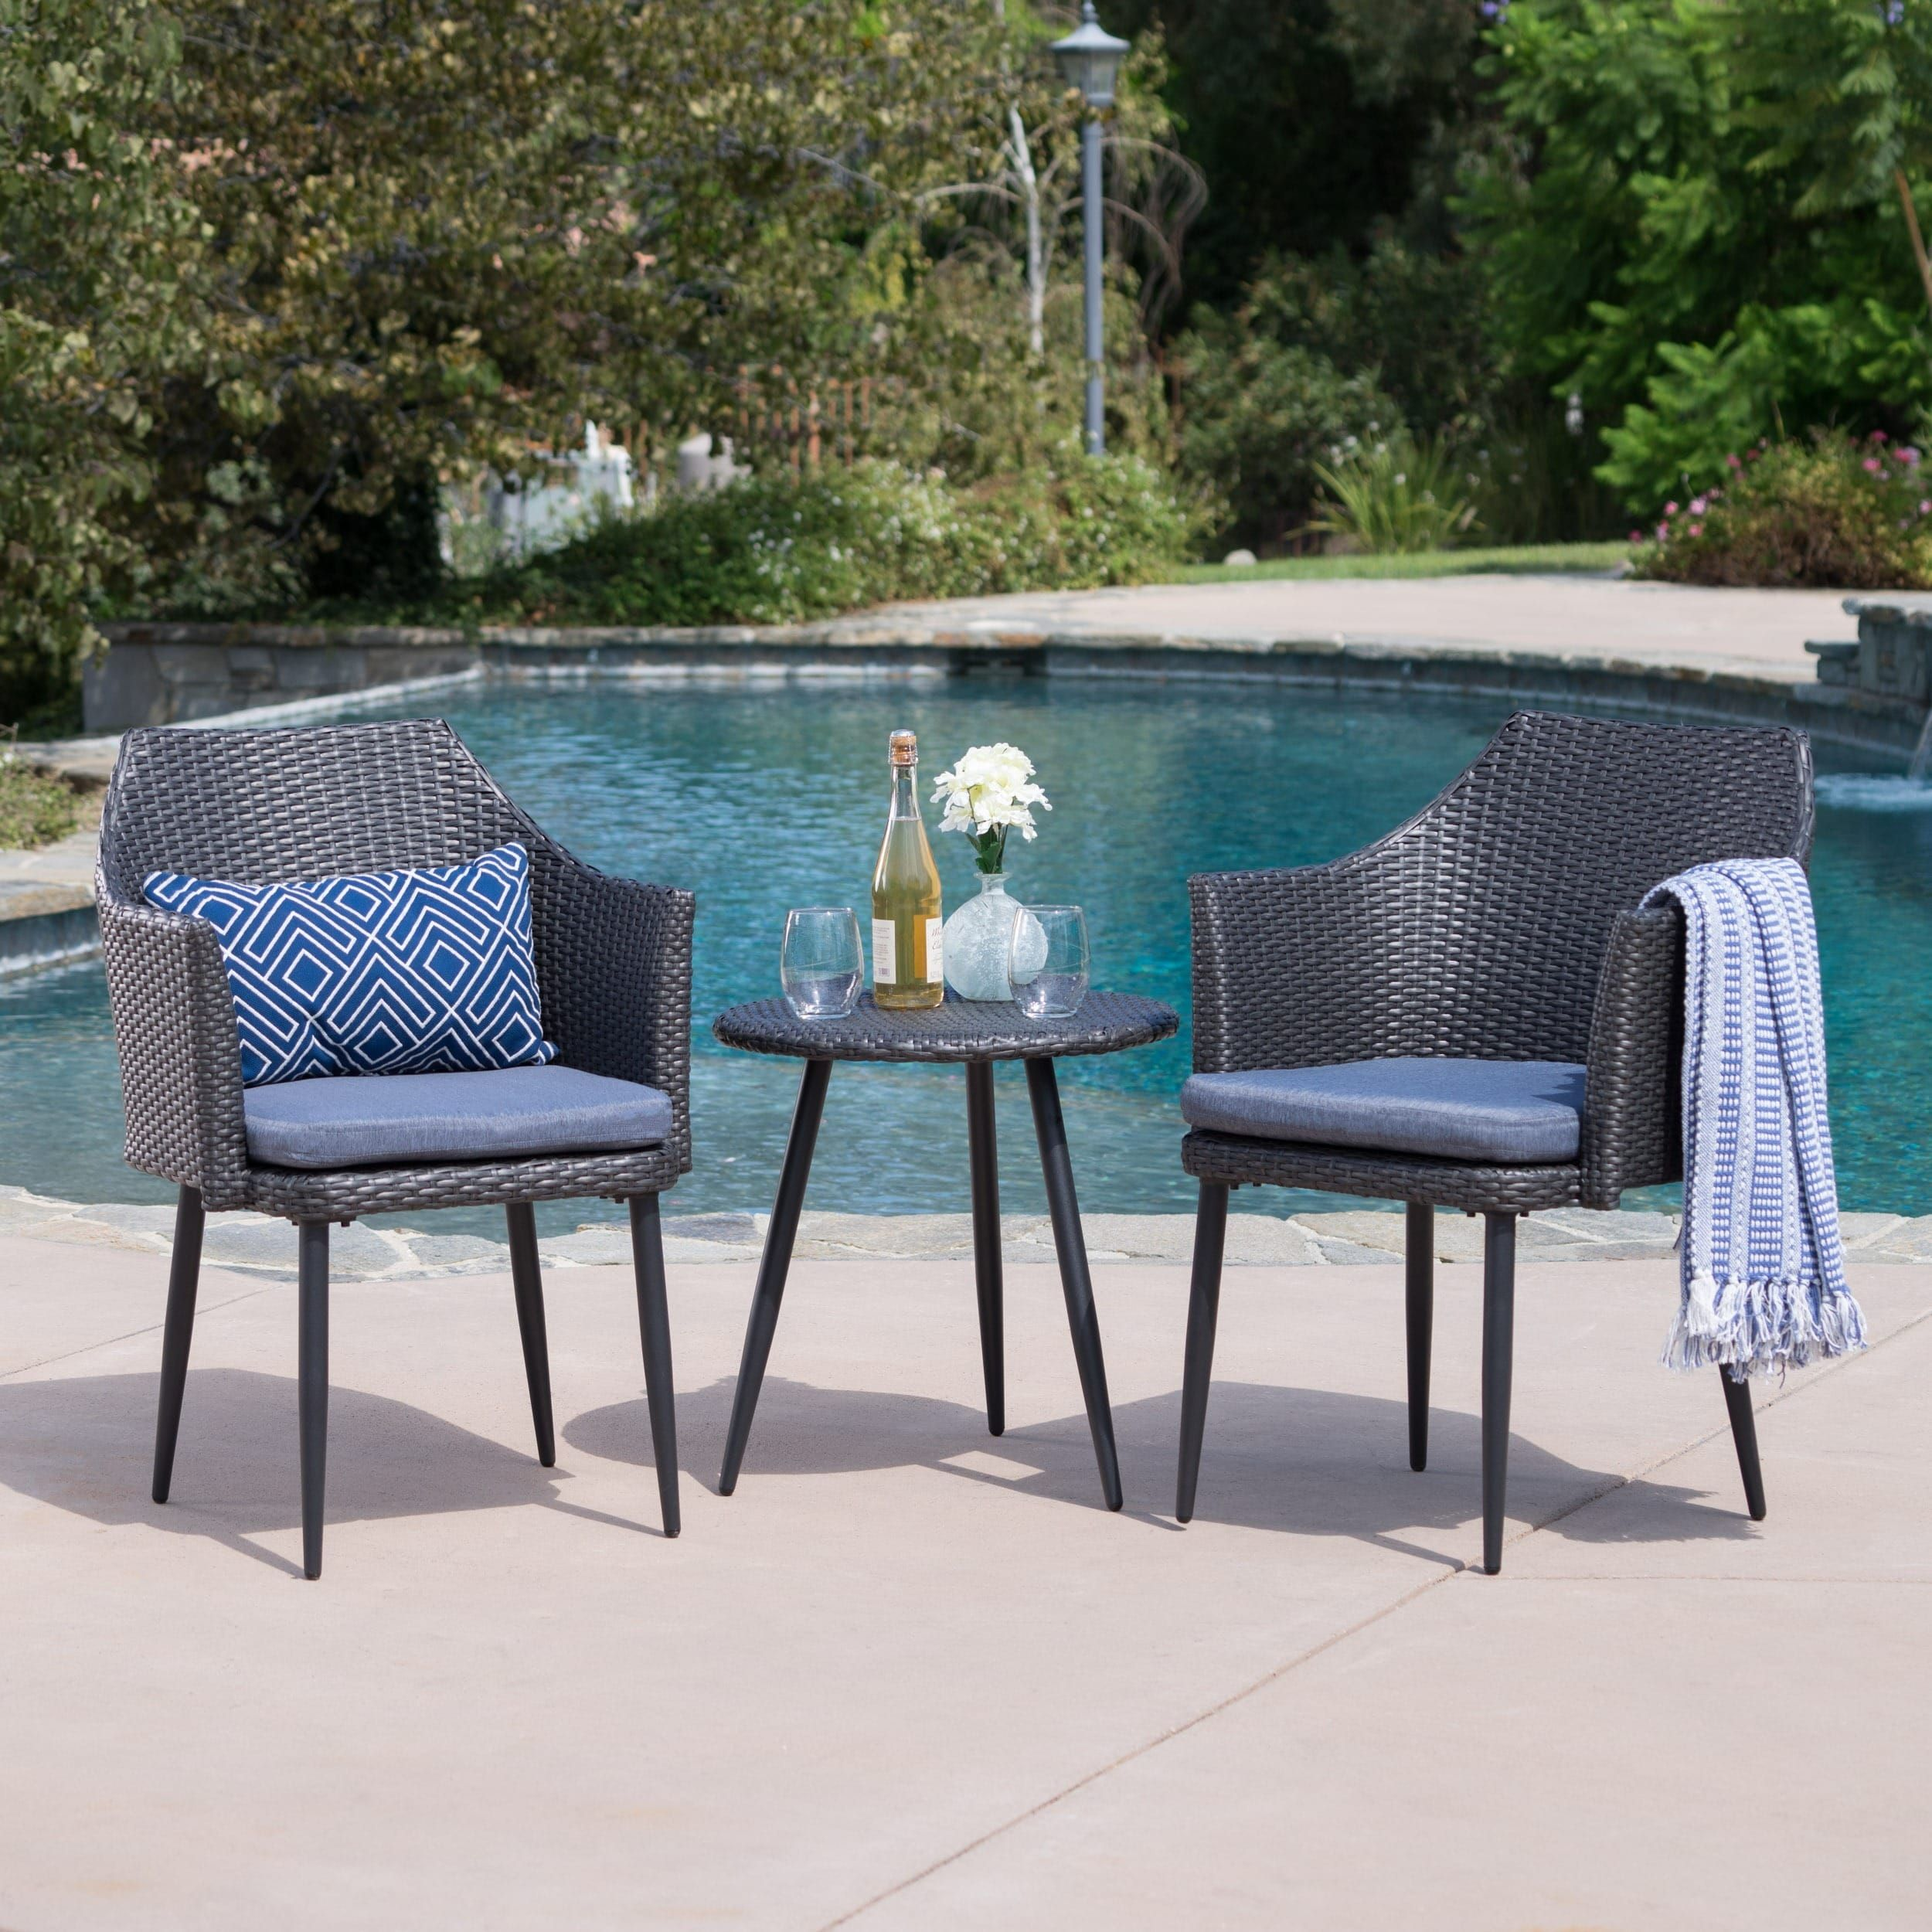 Iona outdoor piece round wicker chat set with cushions by